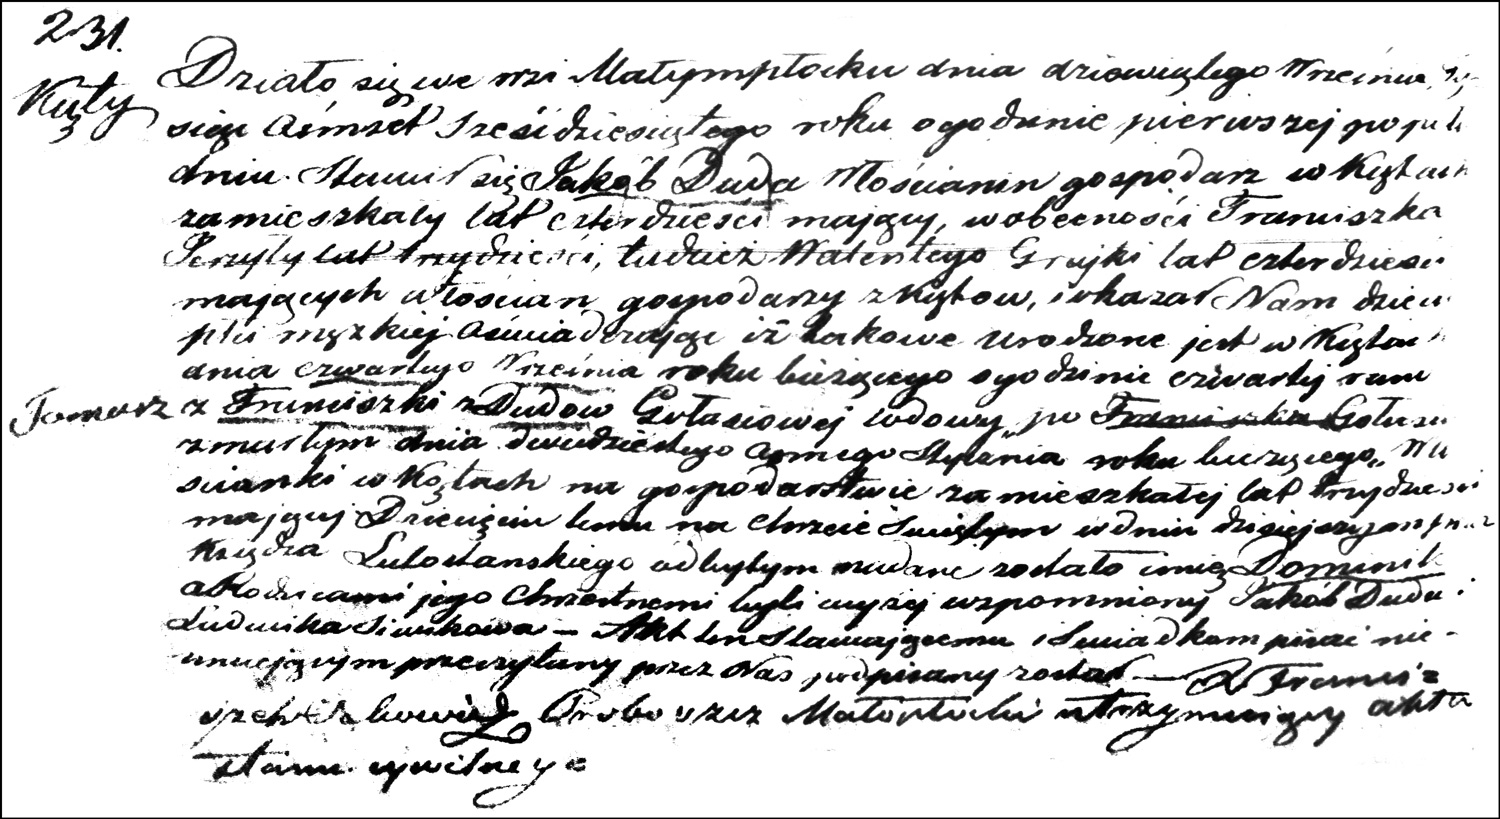 The Birth and Baptismal Record of Dominik Gołaś - 1860